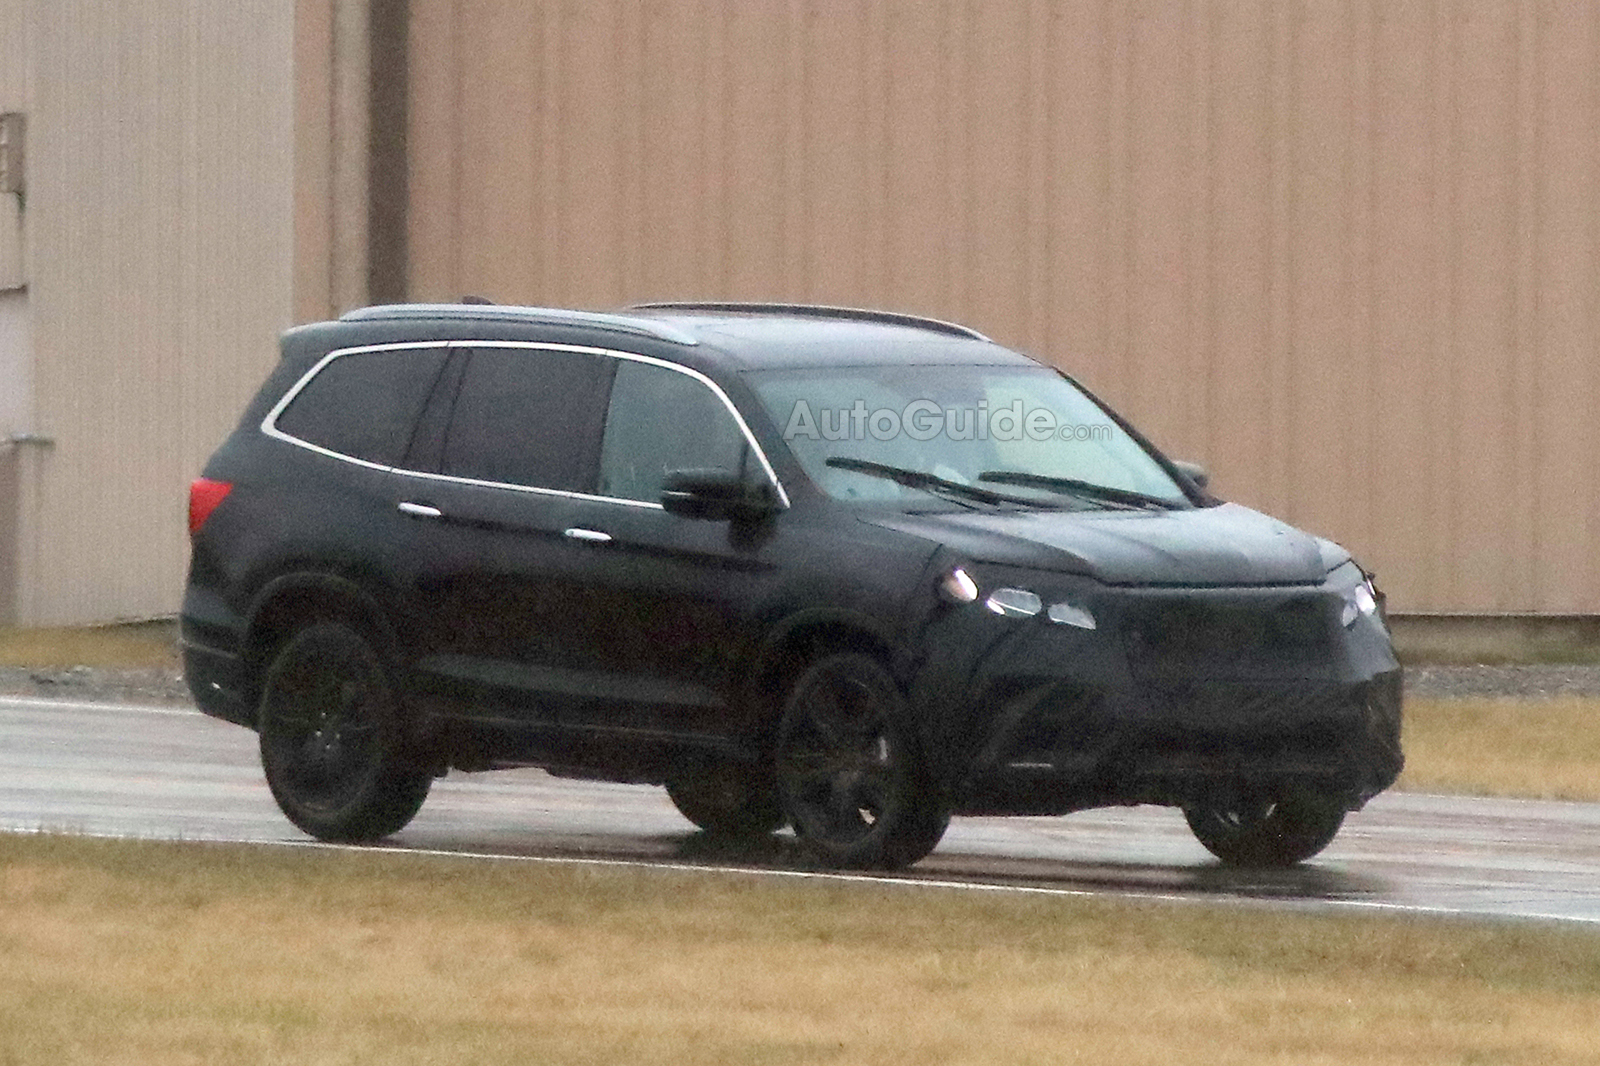 2019 Honda Pilot Partially Revealed In New Spy Photos Ridgeline Owners Club Forums